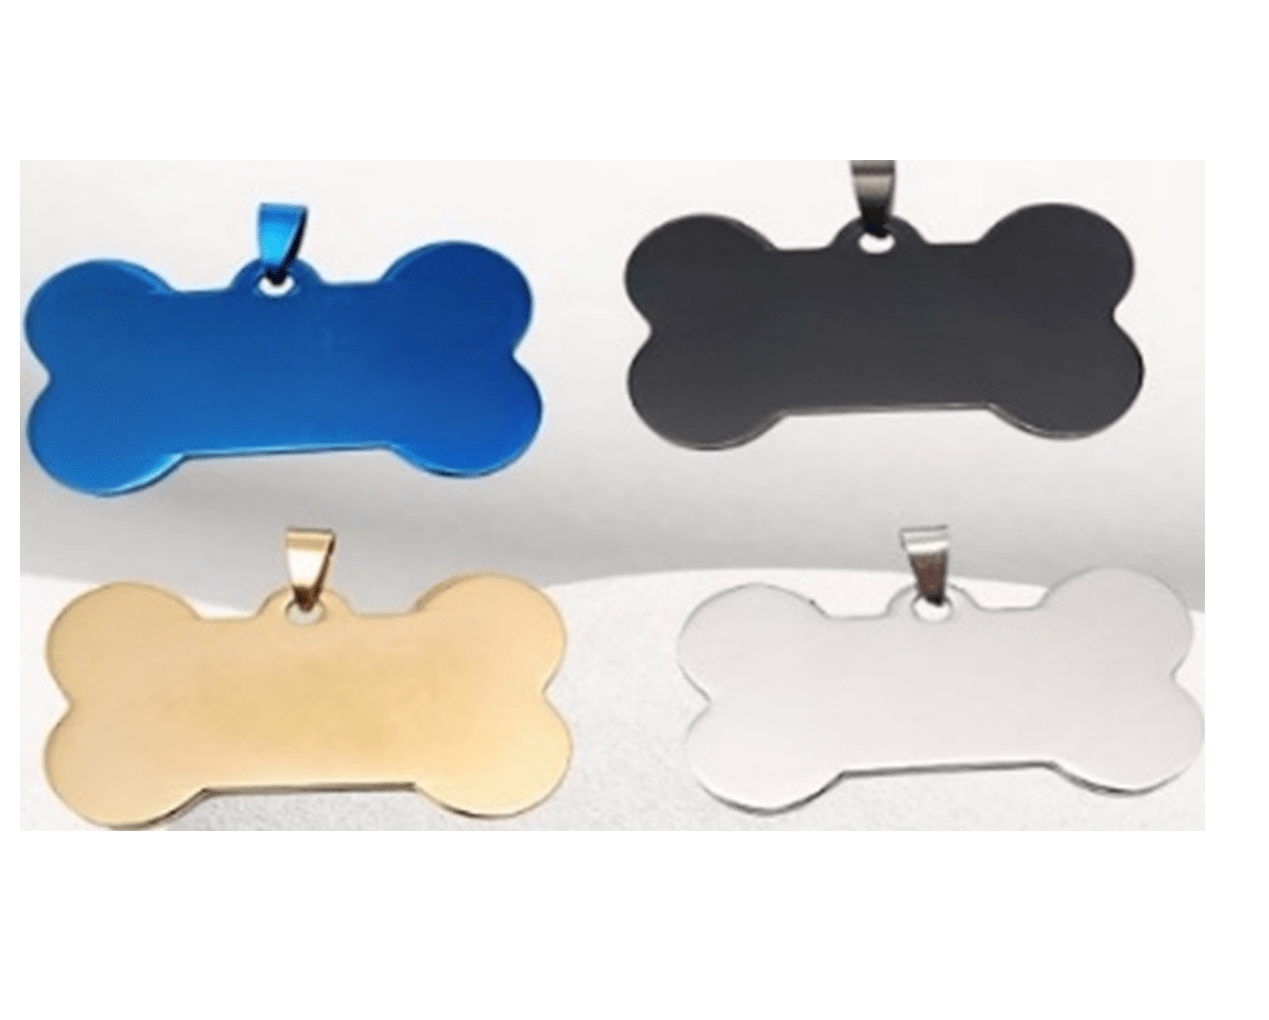 Steel Pet Identity Plate In The Shape Of A Bone In Silver And Other Colors  40*23 And 50*28 Mm